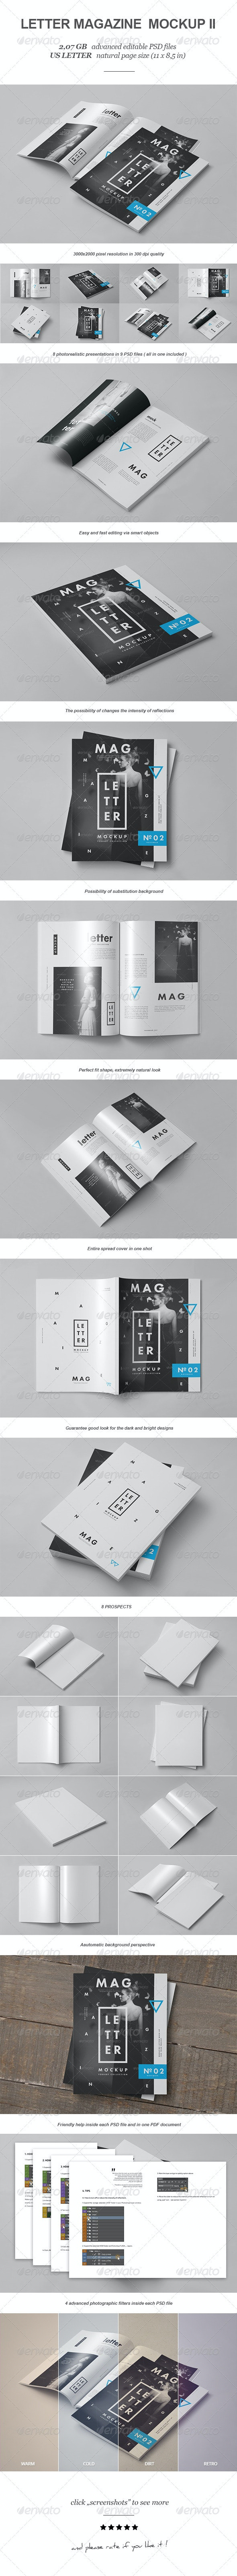 Letter Magazine / Brochure Mock-up II - Magazines Print